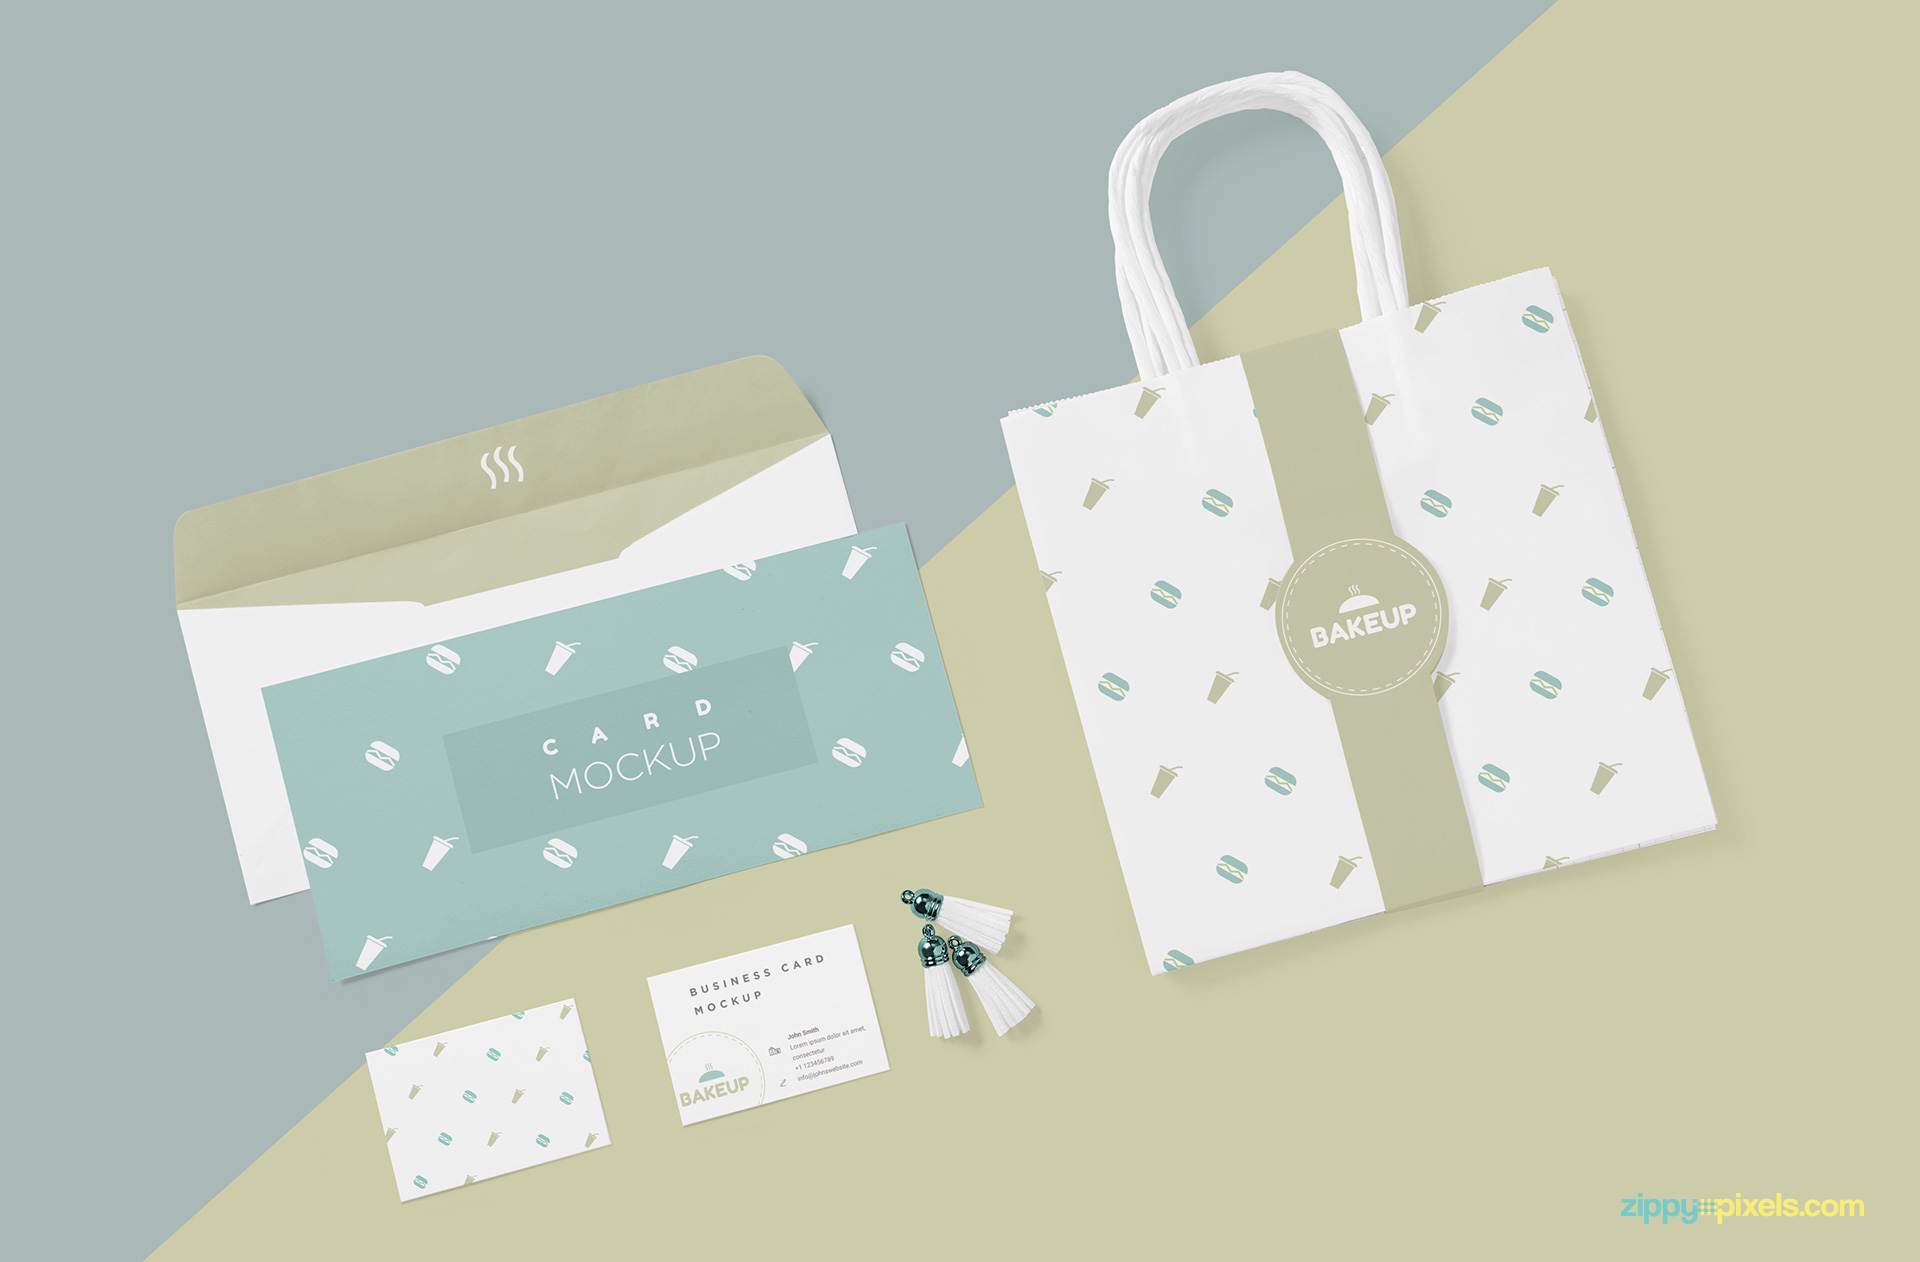 Stationery and packaging mockup in single scene.